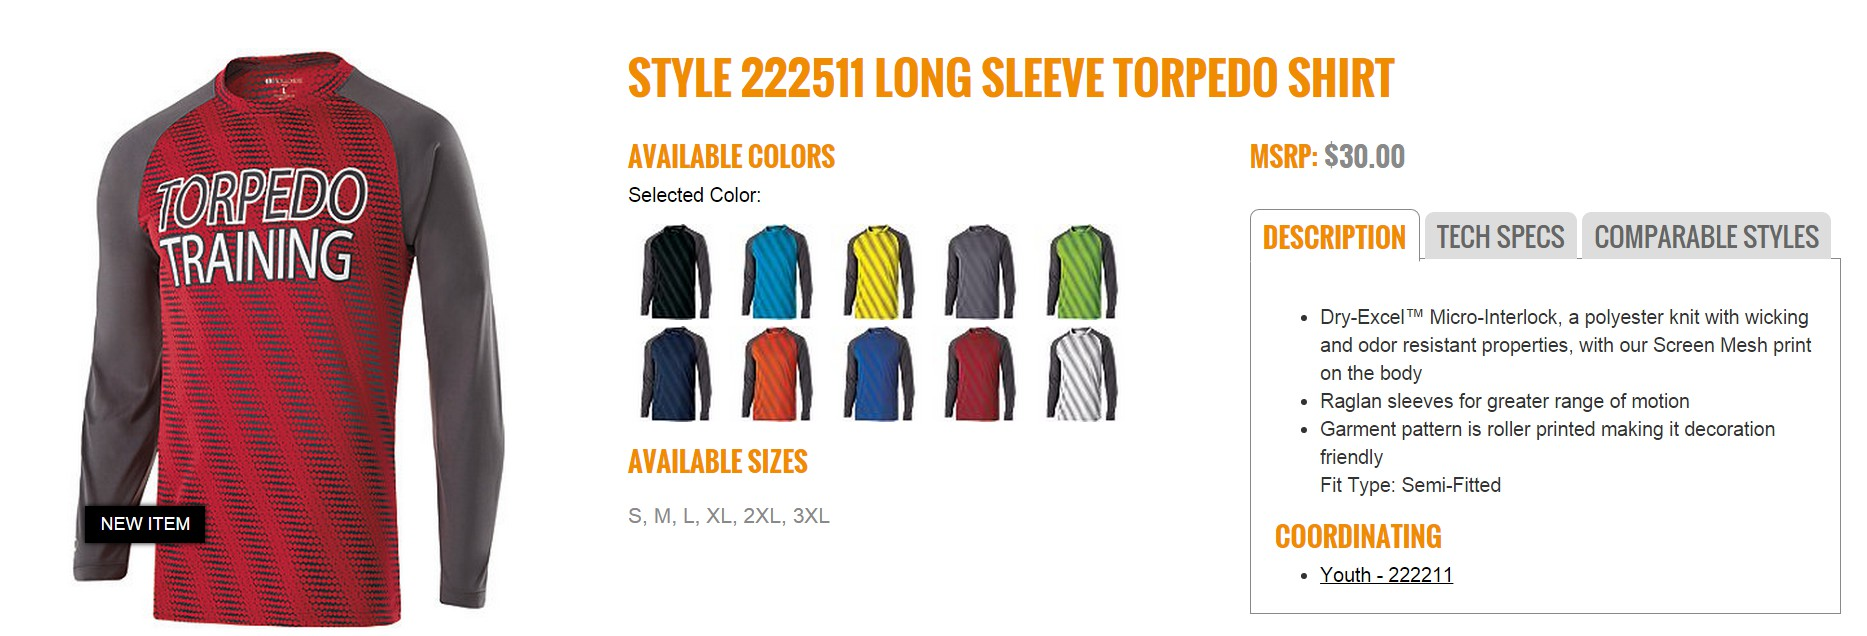 Group Fundraising Store Apparel Fundraising Holloway  Long Sleeve Torpedo Shirt 222511